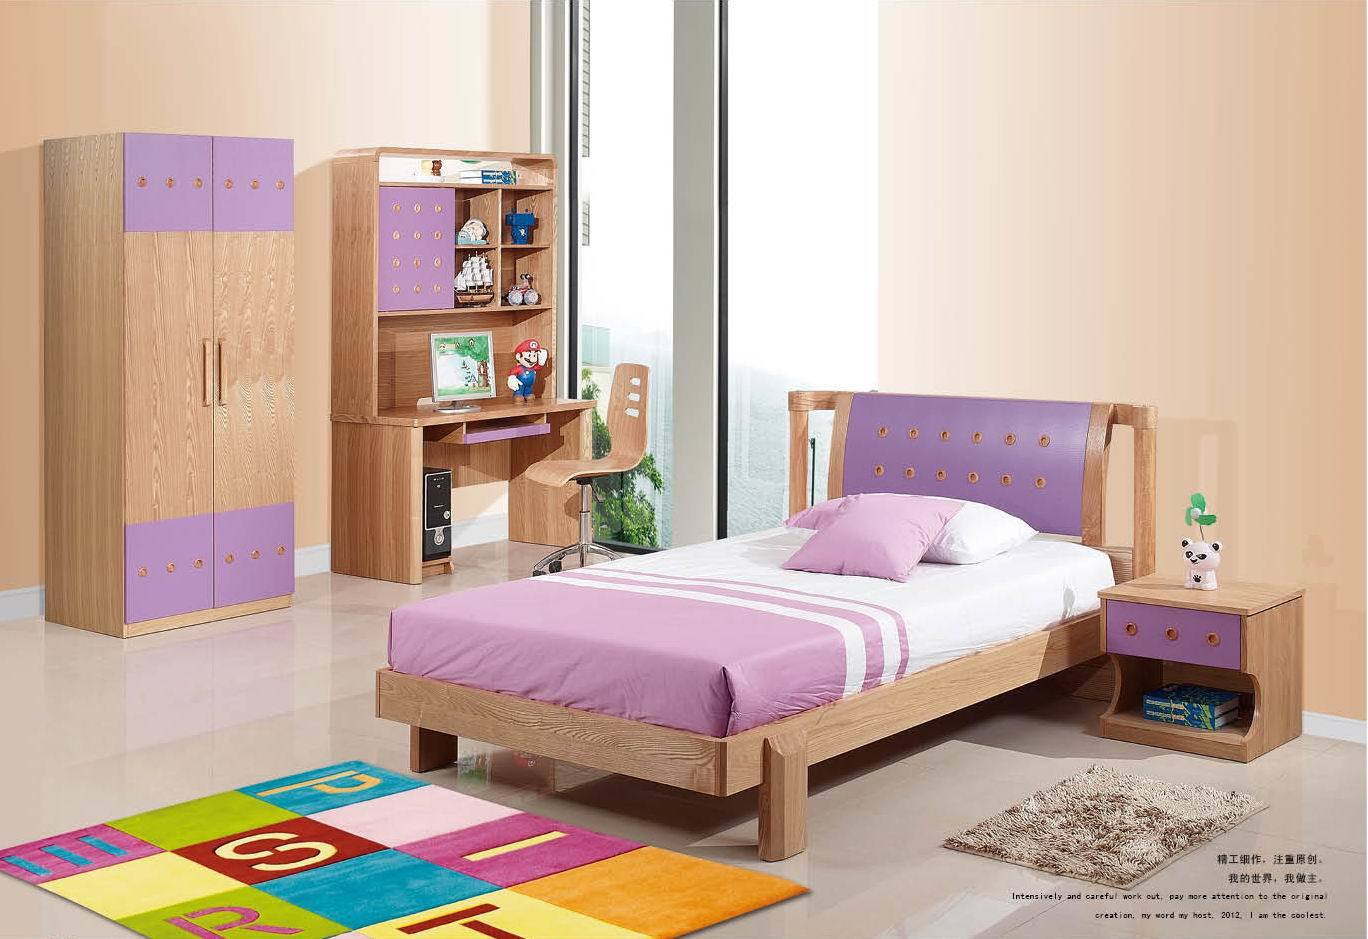 China kids bedroom set jkd 20130 china kids bedroom for Children bedroom furniture